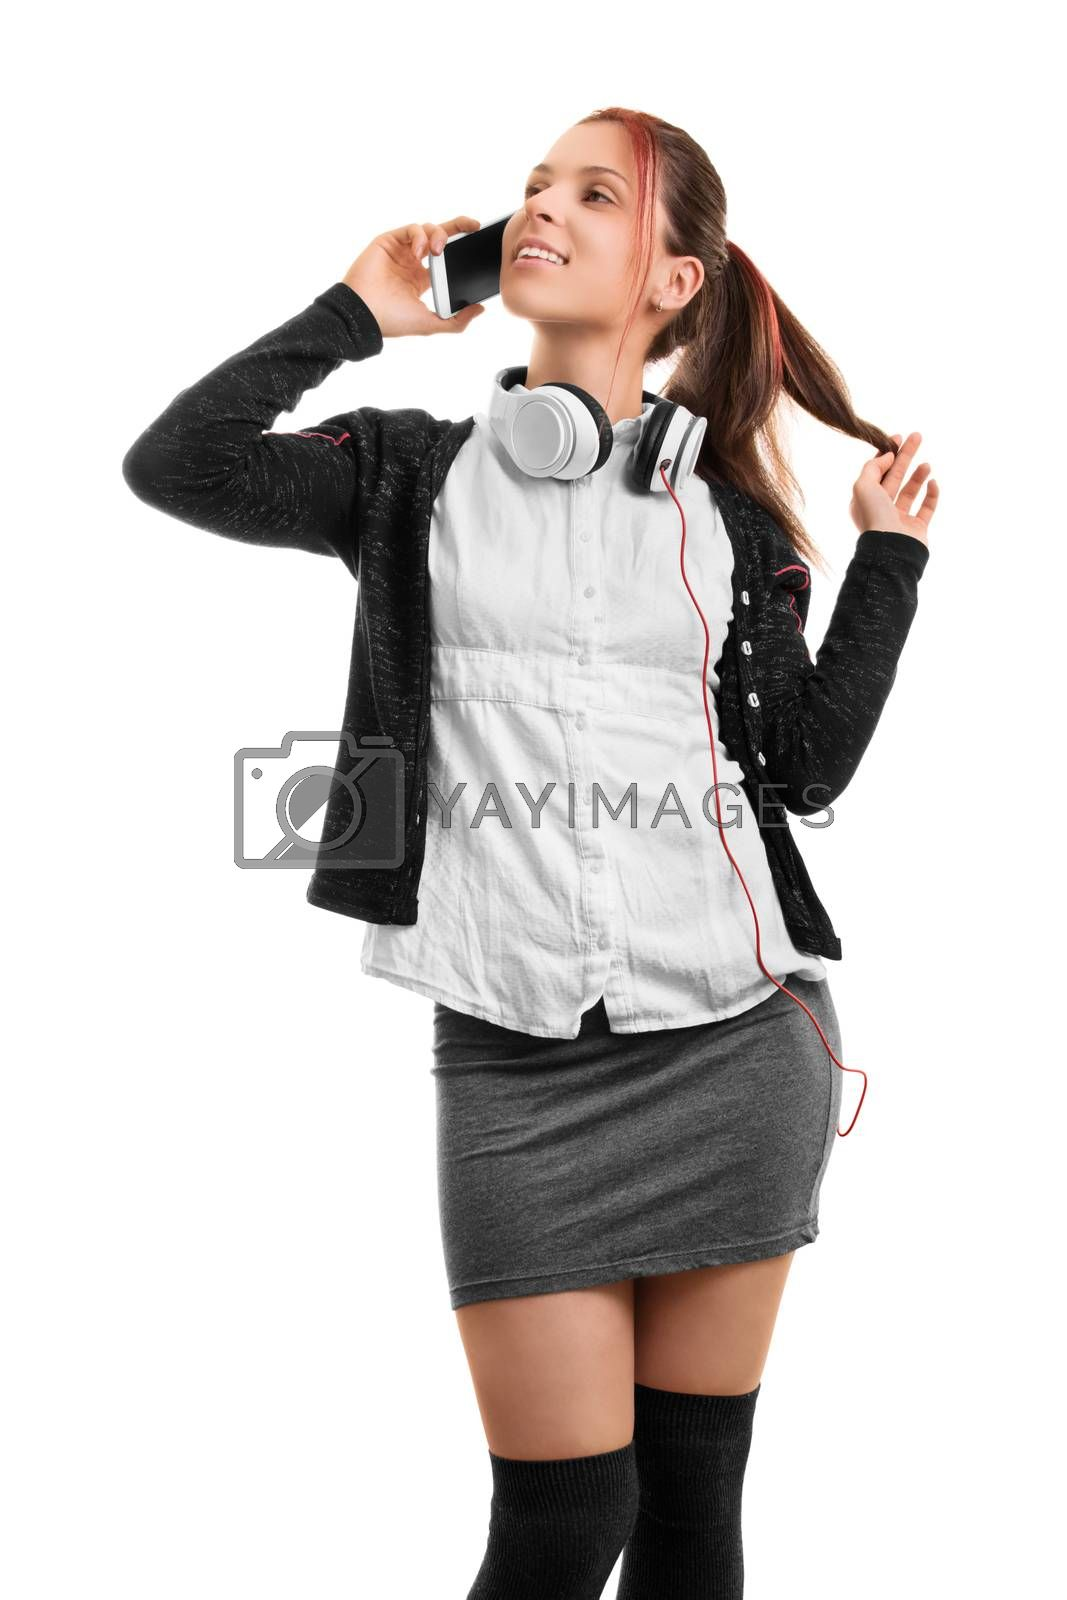 Hey, what's up? Beautiful smiling young girl in school uniform talking on the phone, isolated on white background.